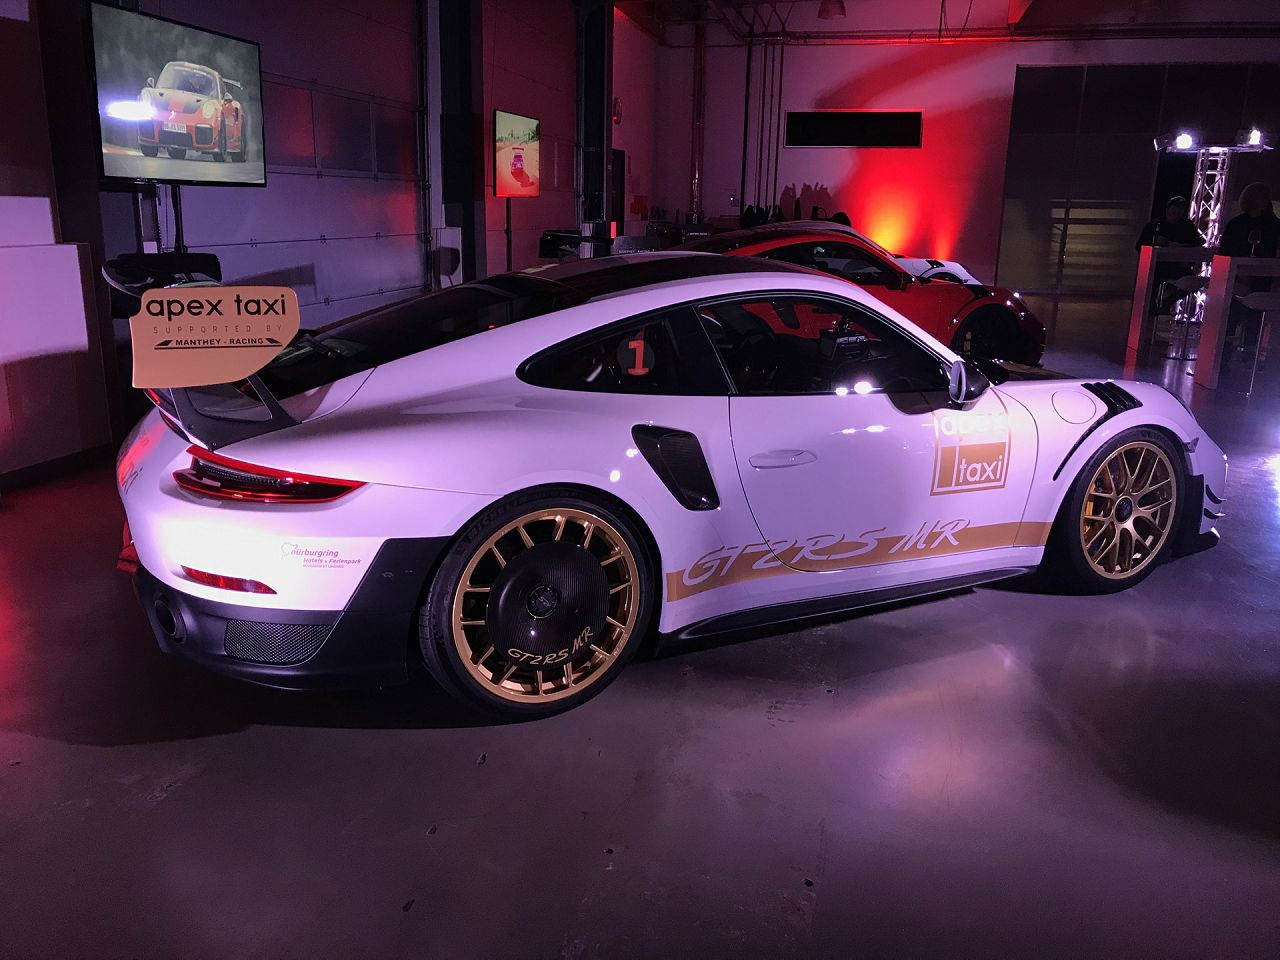 Porsche 911 Gt2 Rs >> Manthey-Racing presents the 911 GT2 RS MR Kit